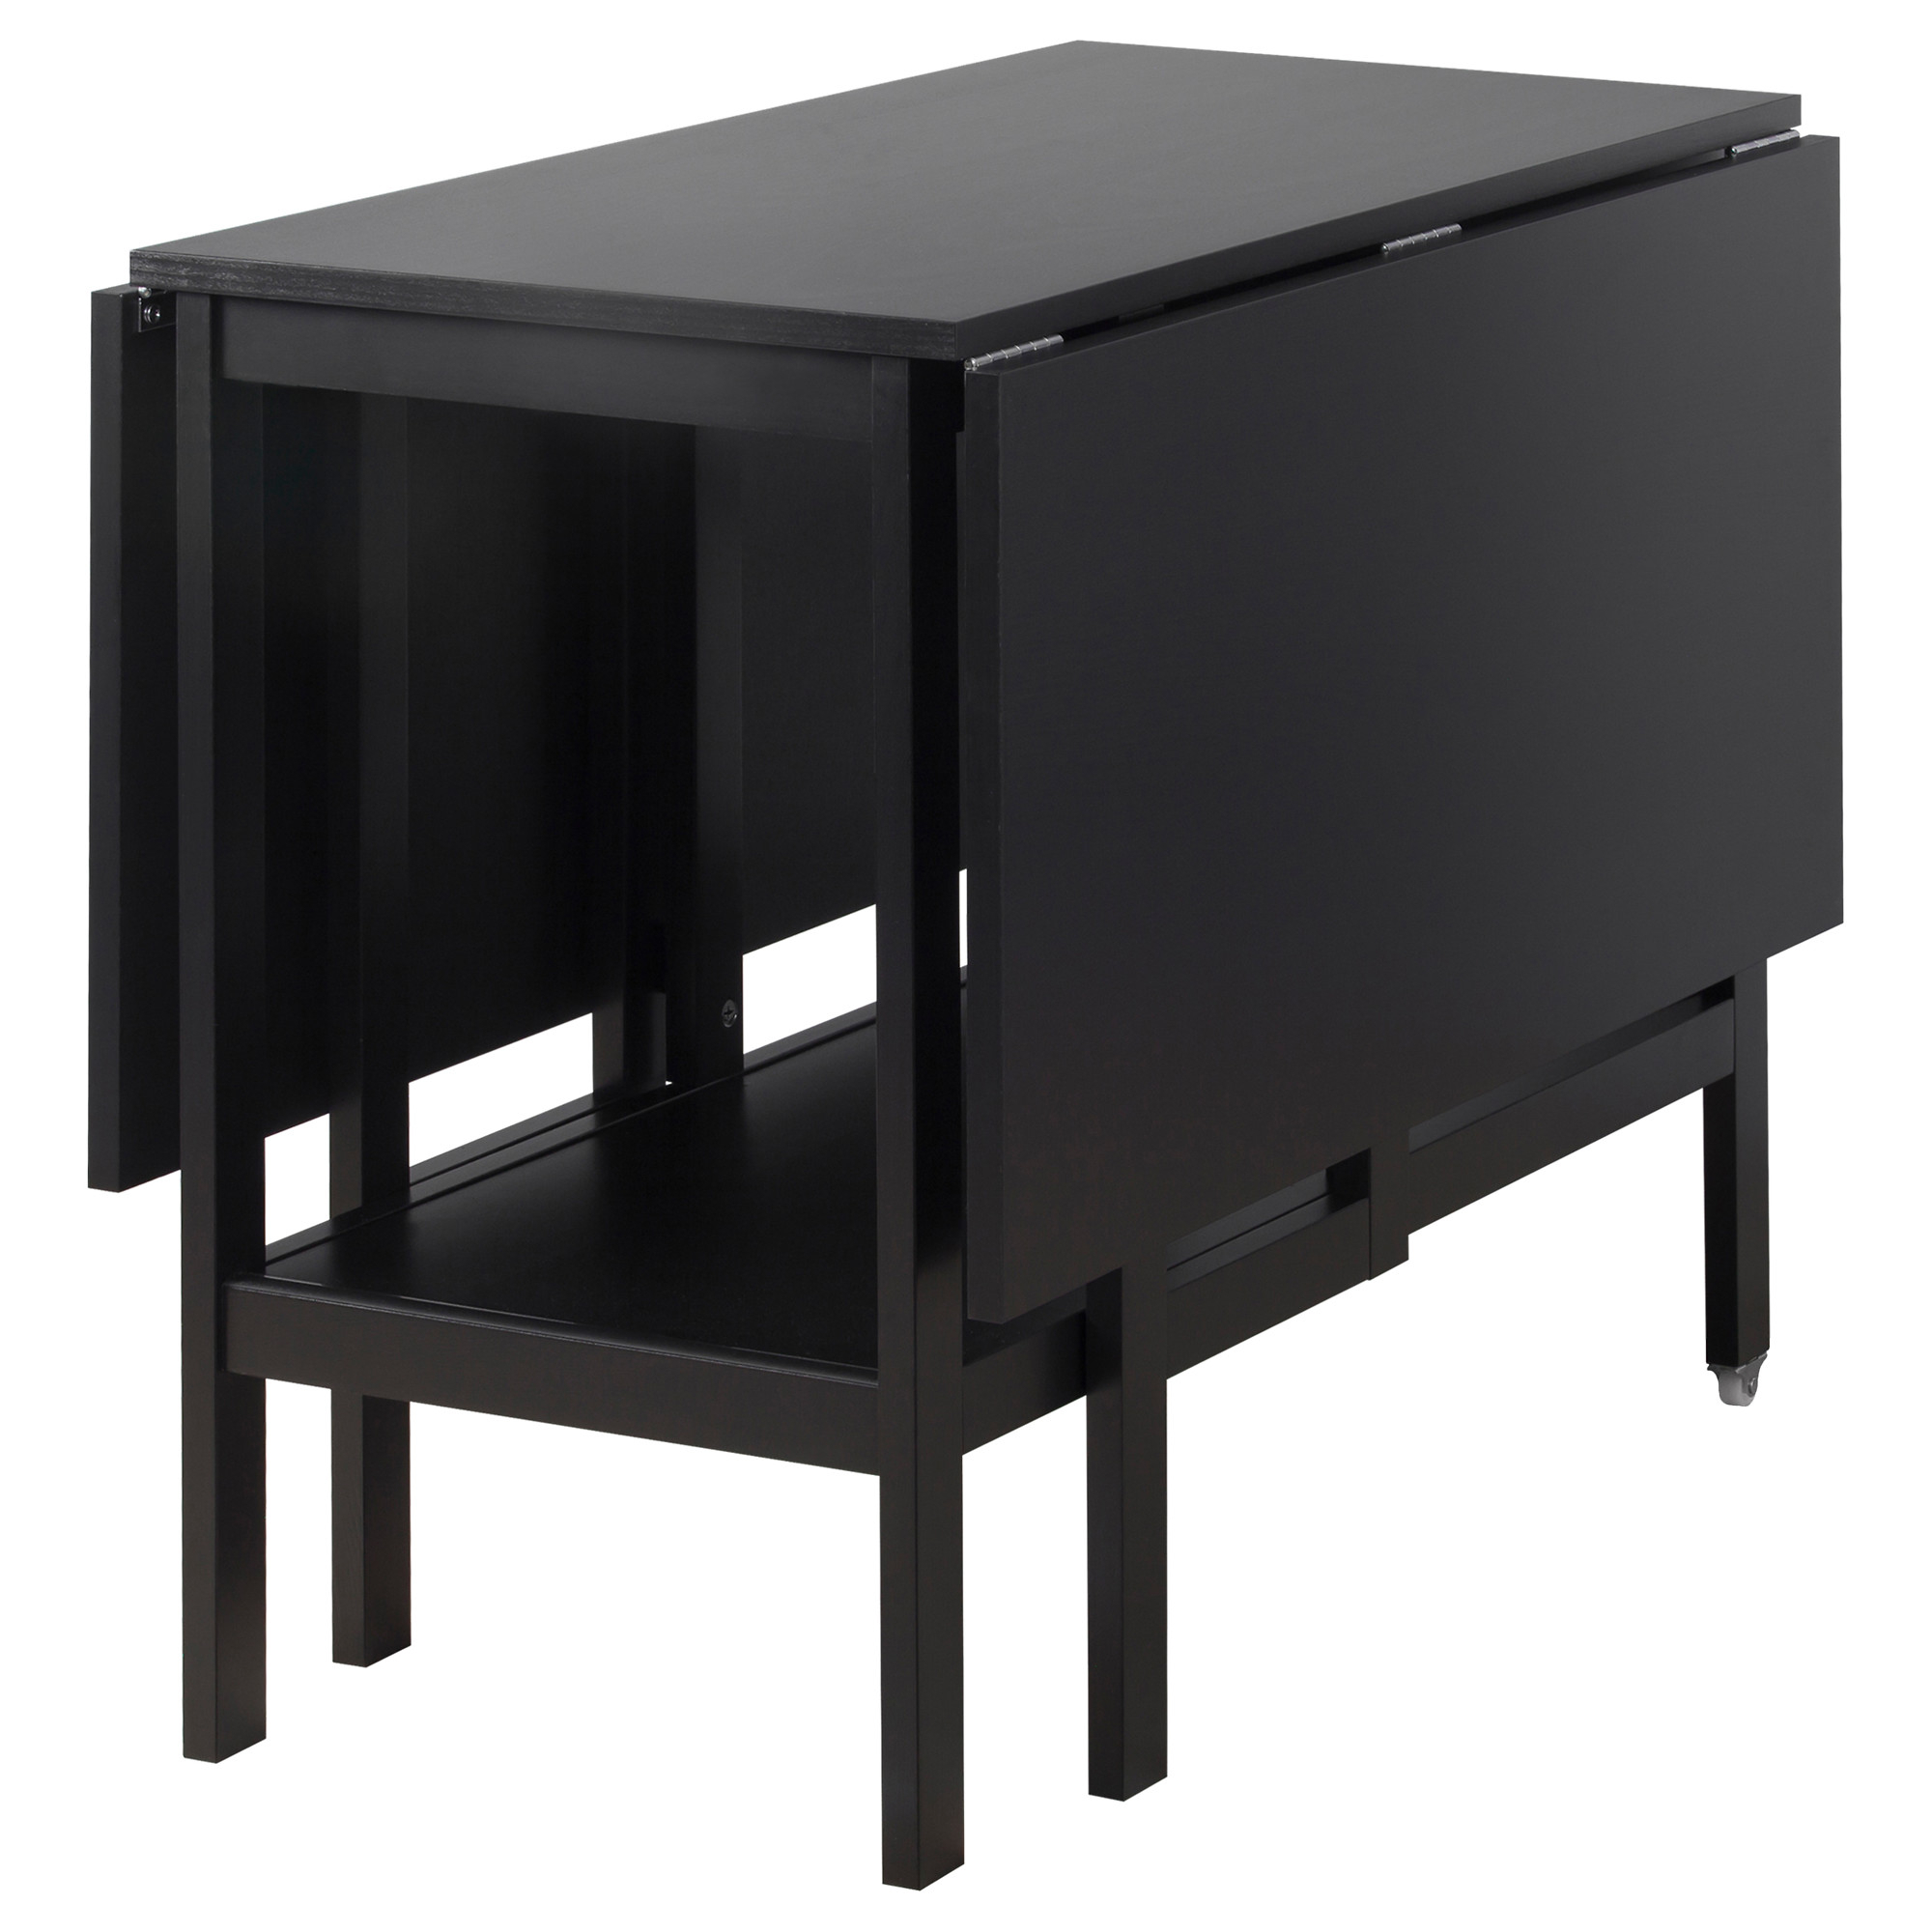 Drop Leaf Table Black – Martinique Within Best And Newest Black Shayne Drop Leaf Kitchen Tables (View 5 of 25)